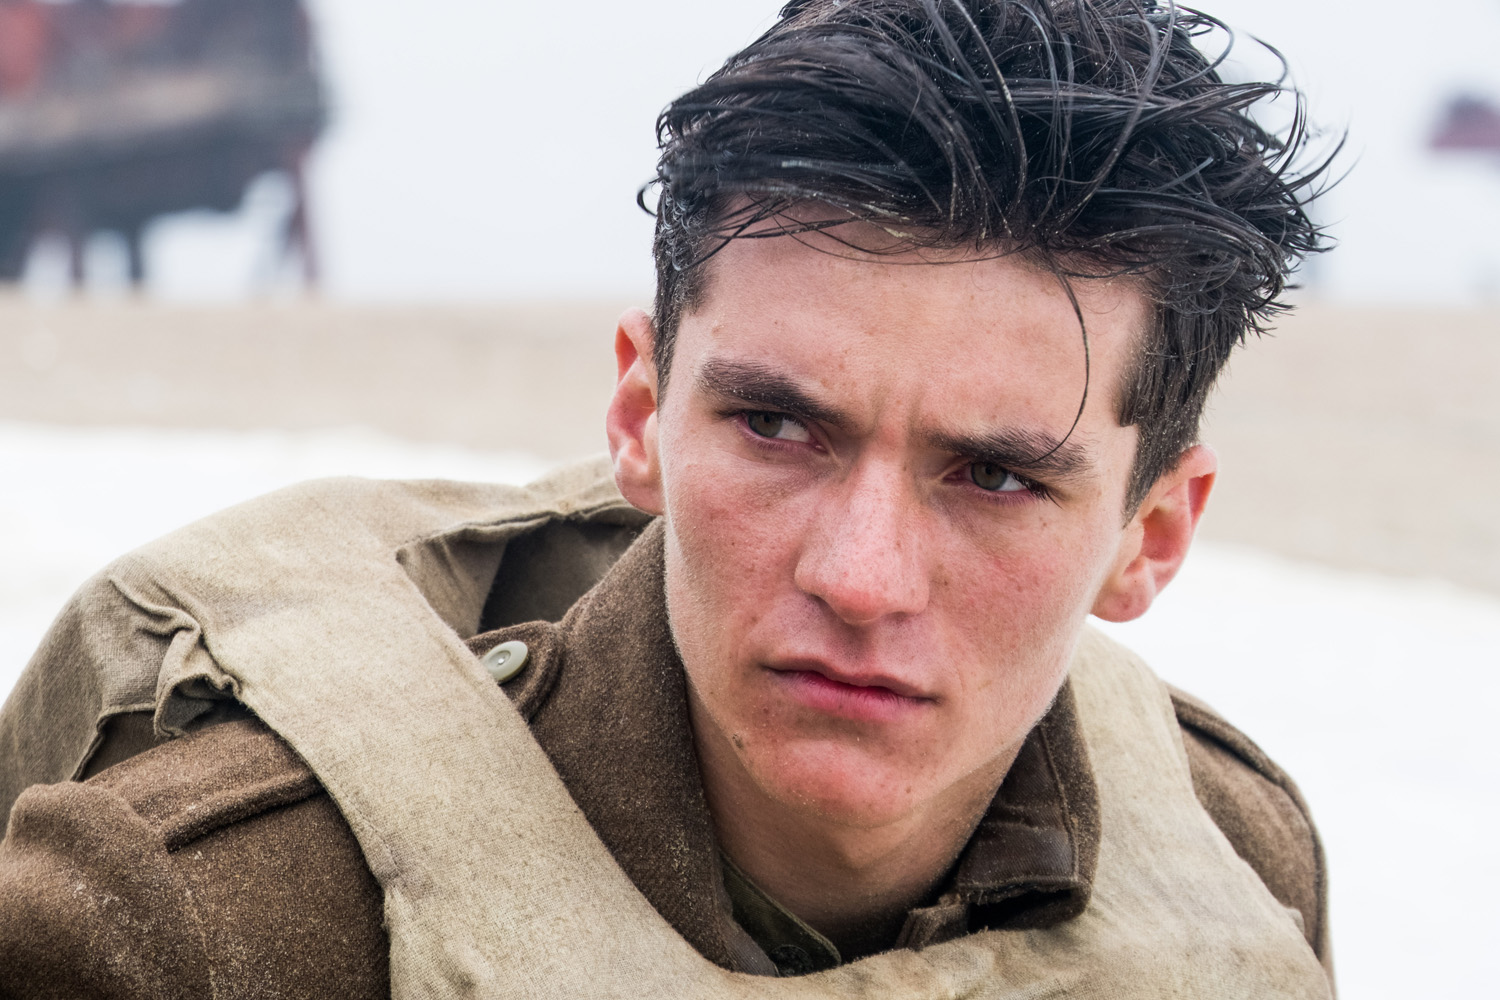 Upcoming actor Fionn Whitehead plays Tommy, one of the soldiers in 'Dunkirk.'  Photo courtesy of Warner Bros. Pictures